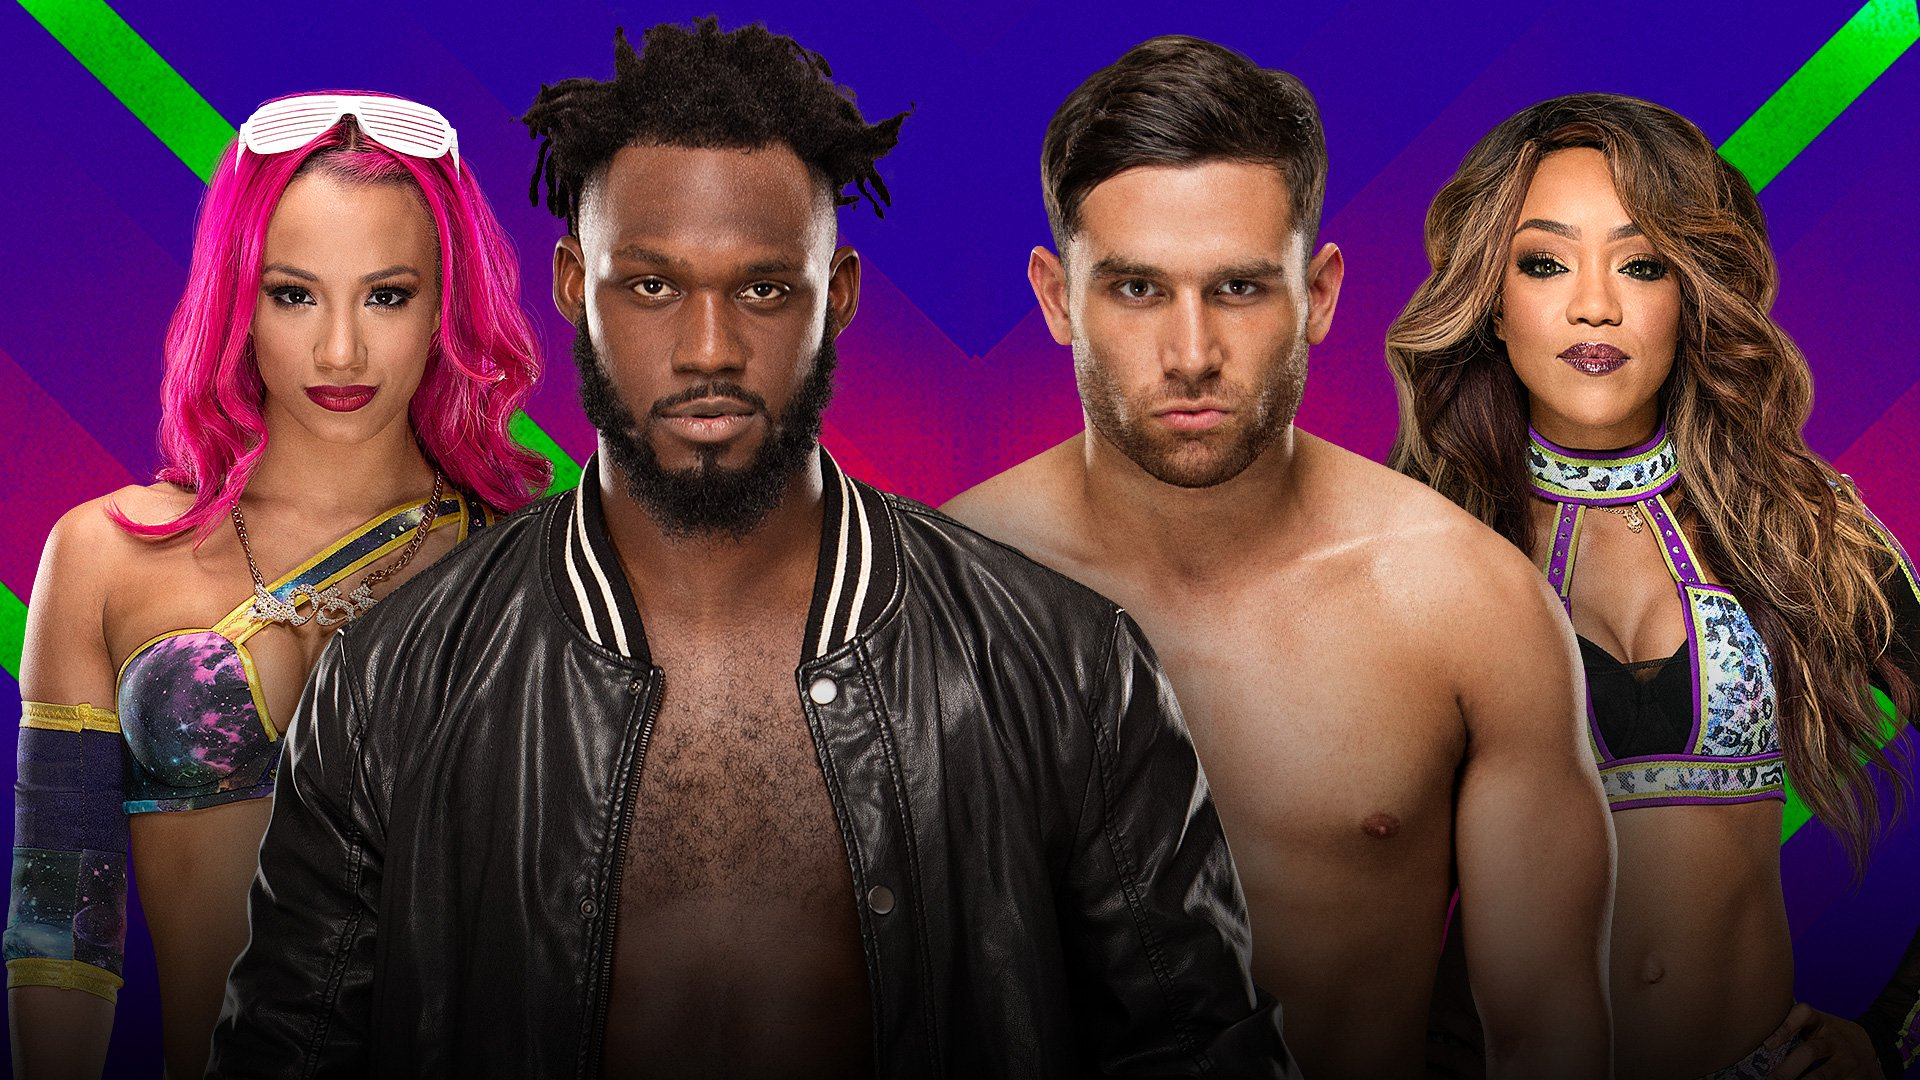 WWE Extreme Rules 2017: Sasha Banks e Rich Swann vs. Noam Dar e Alicia Fox